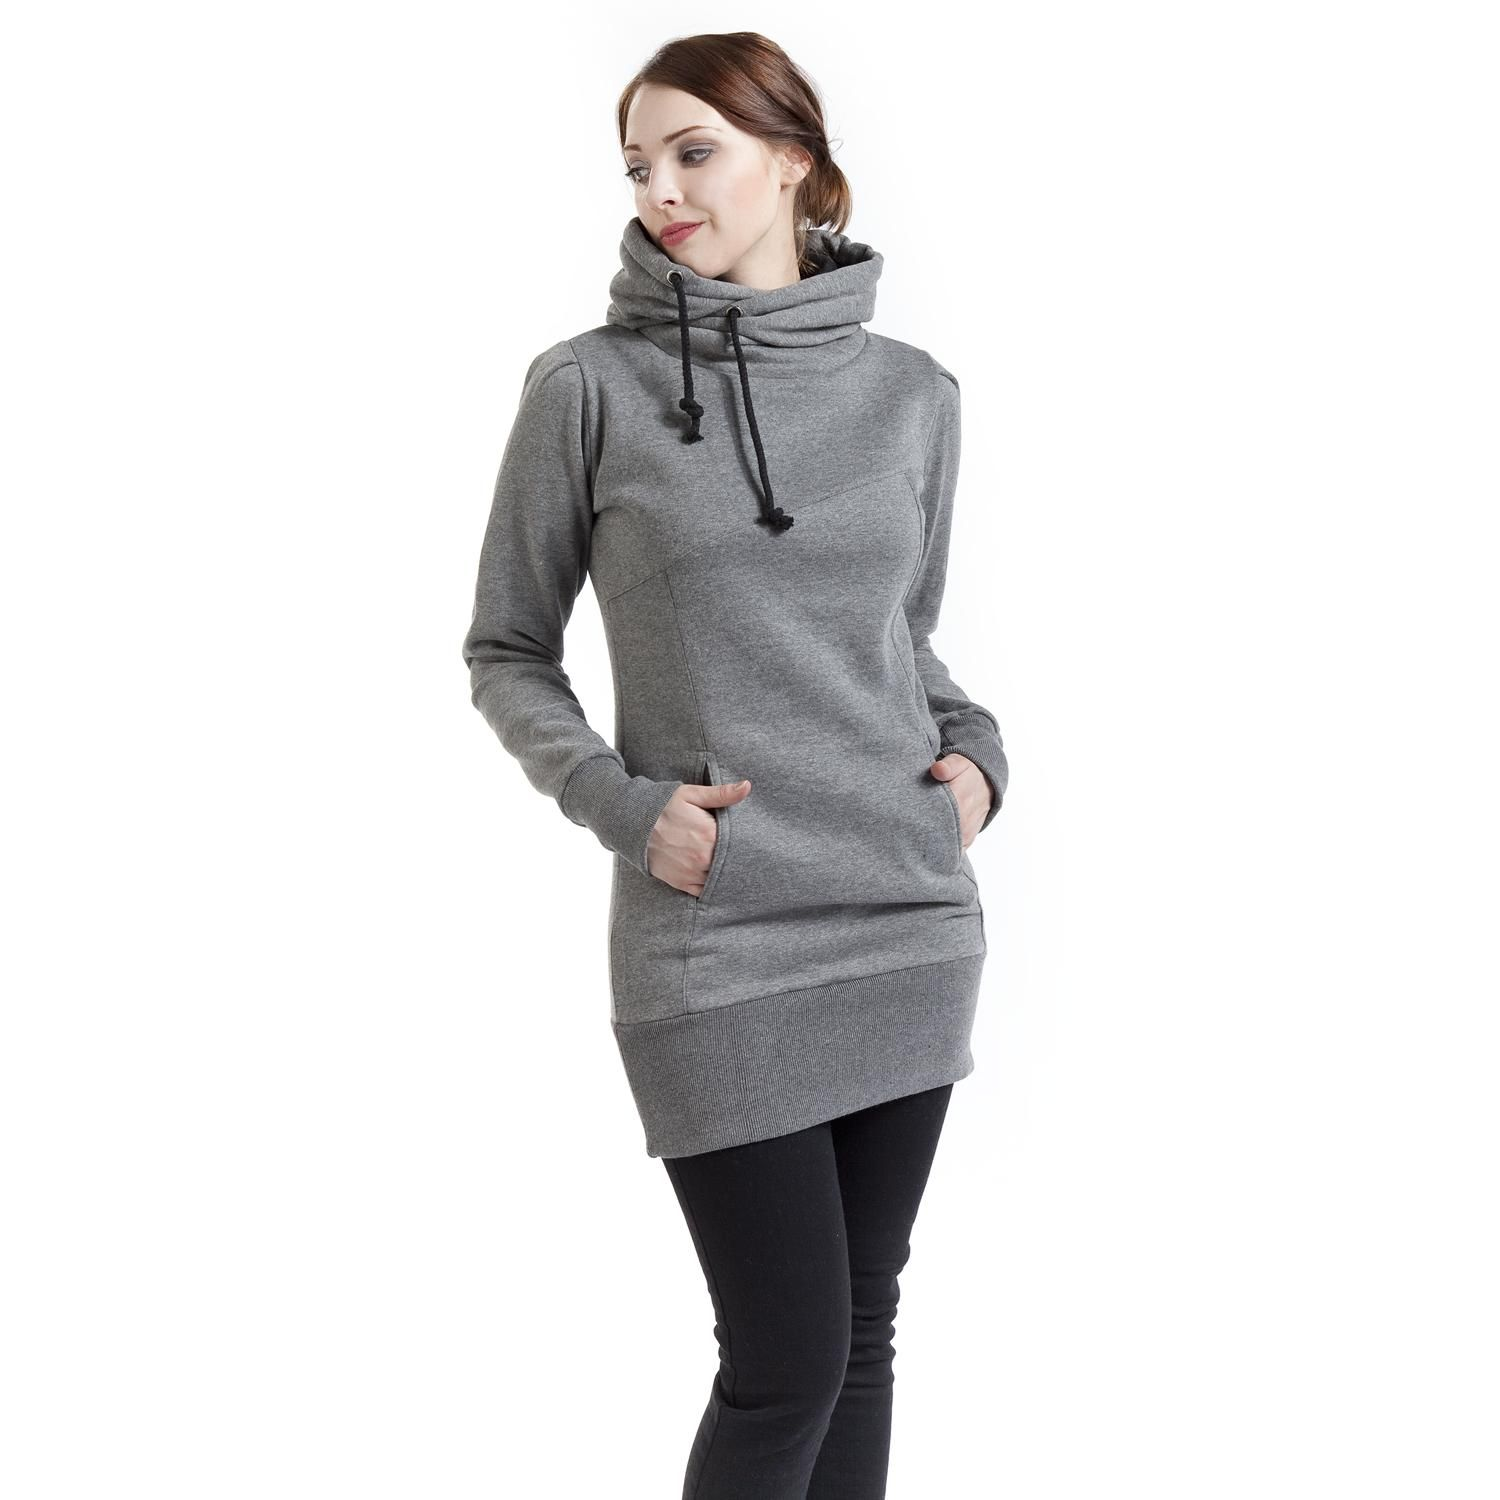 Smart Hoodie (Forplay) | Sweatshirt, Hoodie and Hooded sweater